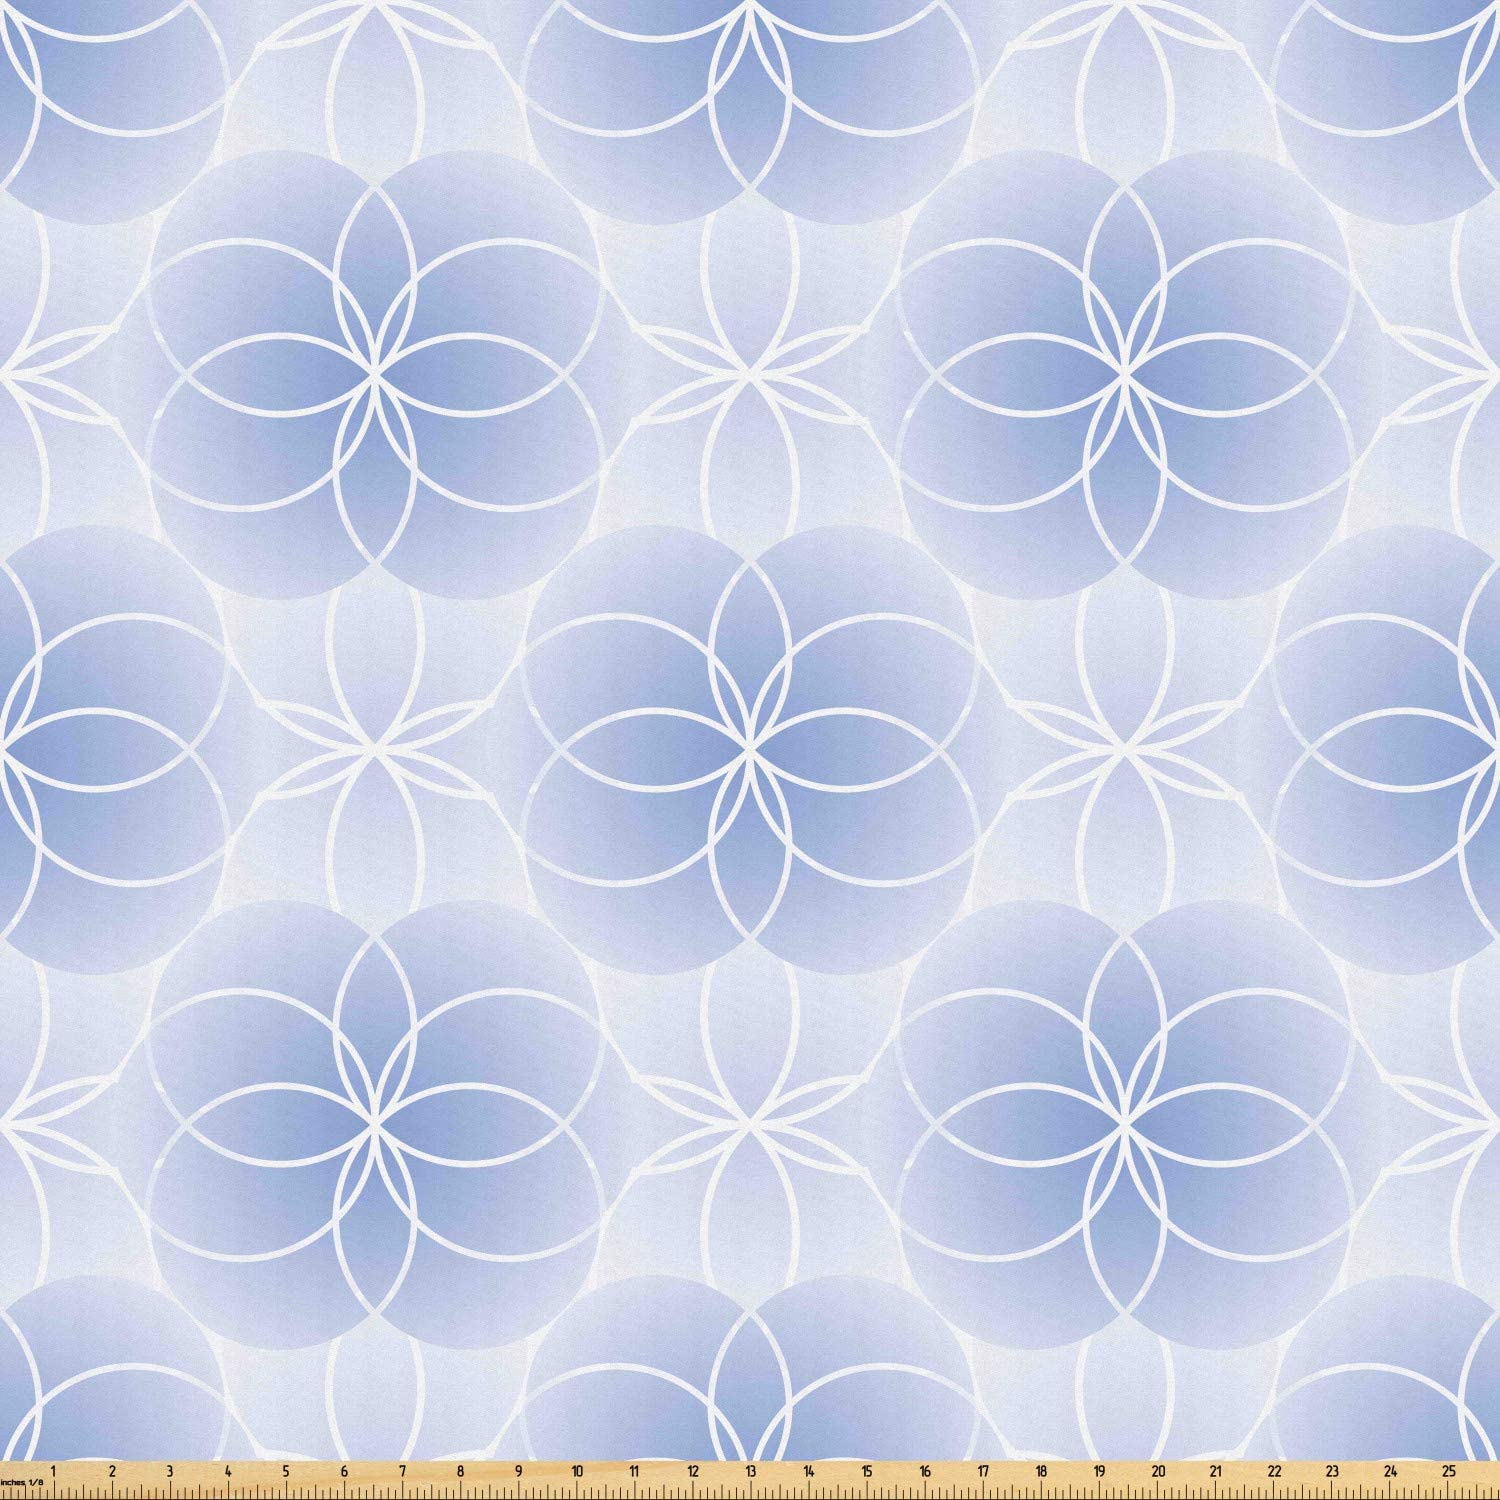 Ambesonne Geometry Fabric by The Yard, Proportion of The World with Intersecting Concentric Spiral Art, Microfiber Fabric for Arts and Crafts Textiles & Decor, Pale Blue